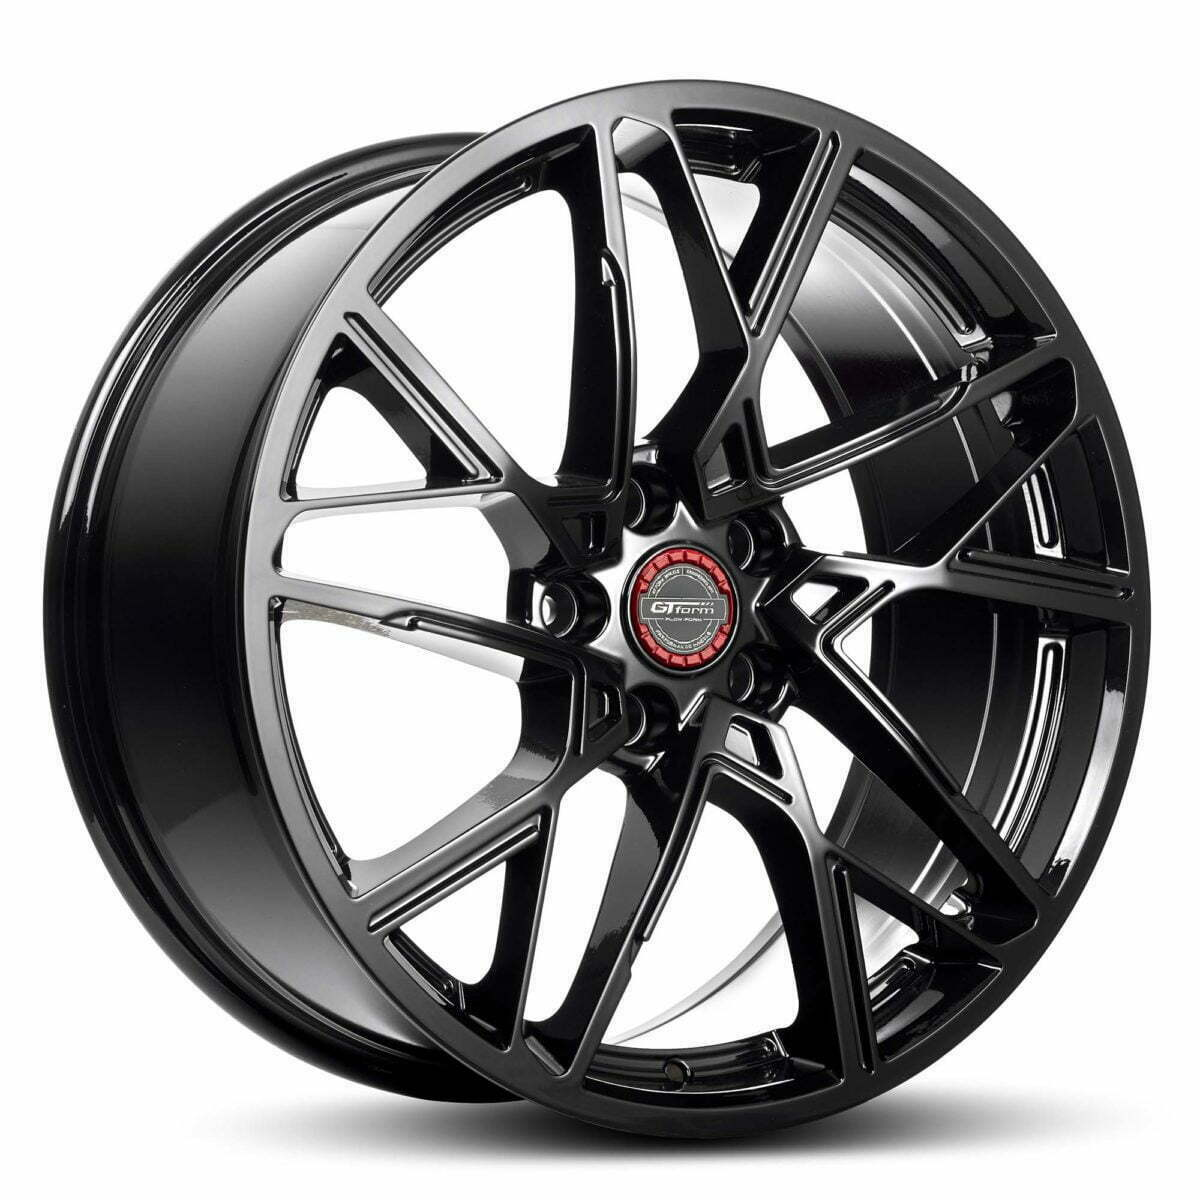 GT form Interflow Gloss Black Wheels Red Centre Cap Performance Rims